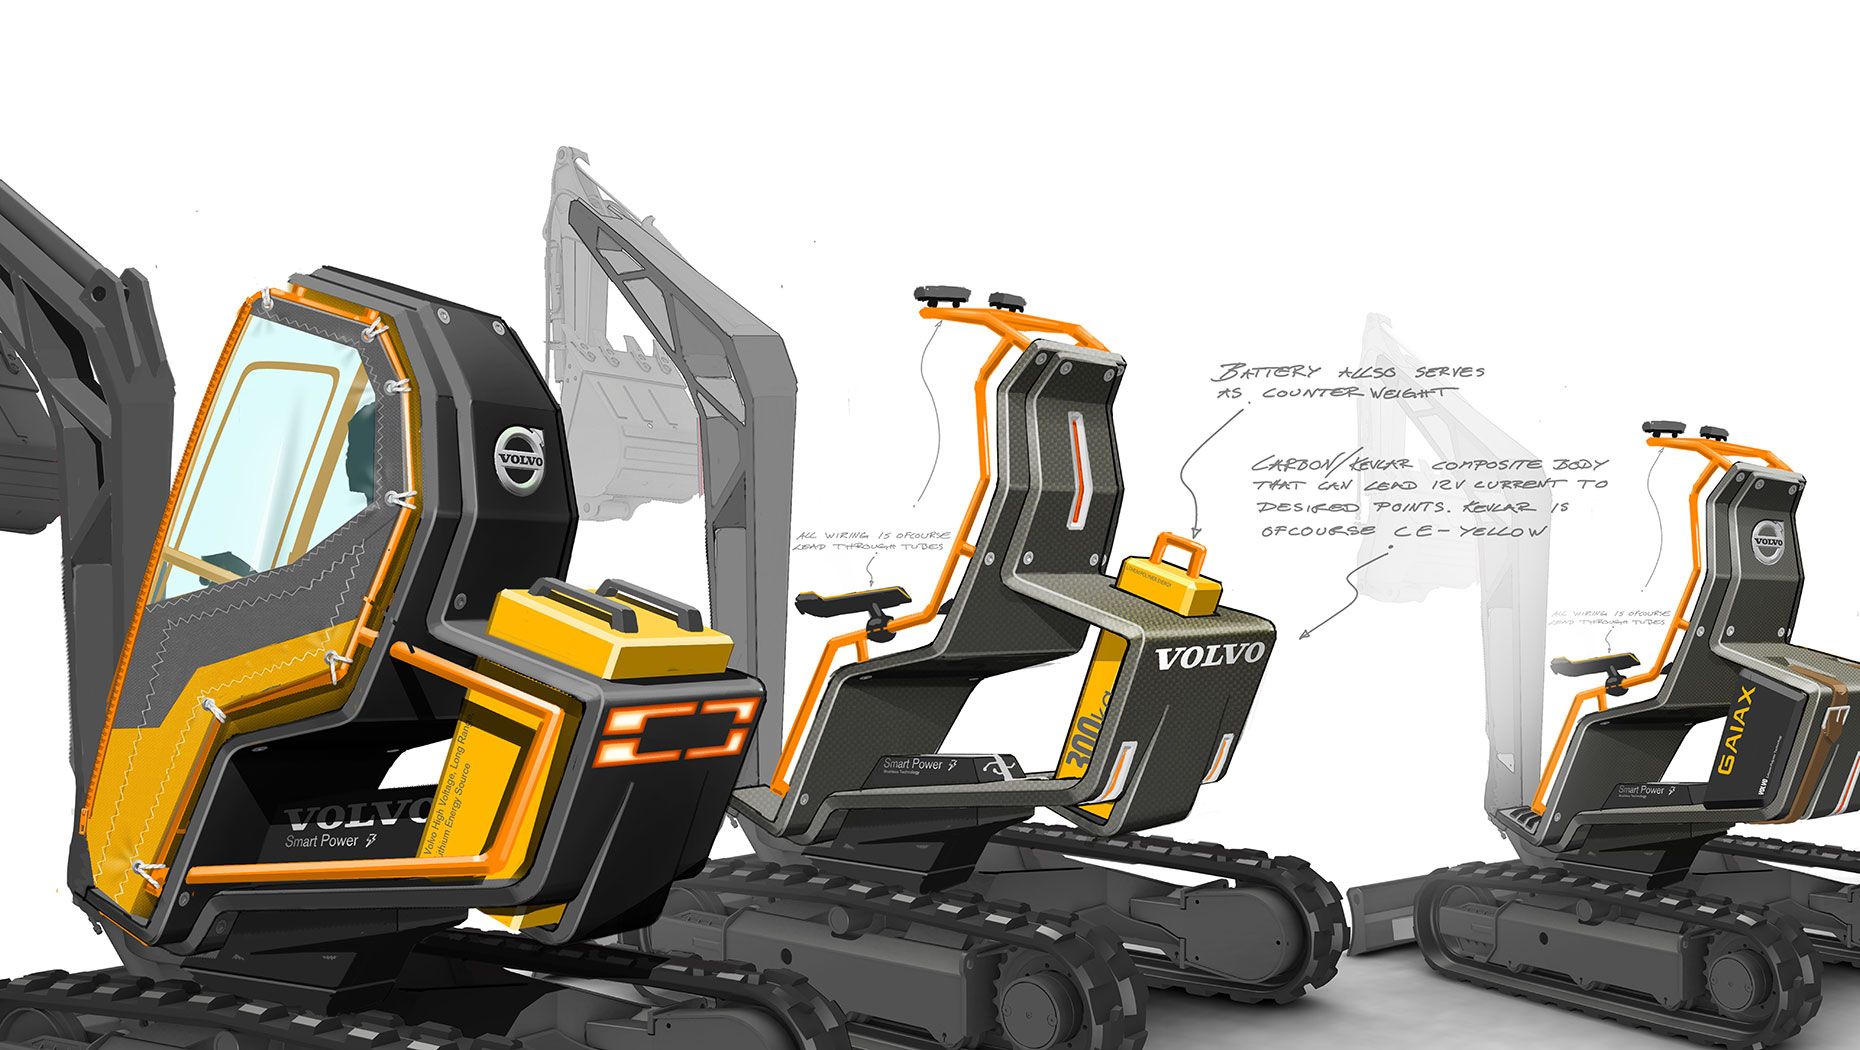 The GaiaX - a fully electric compact excavator